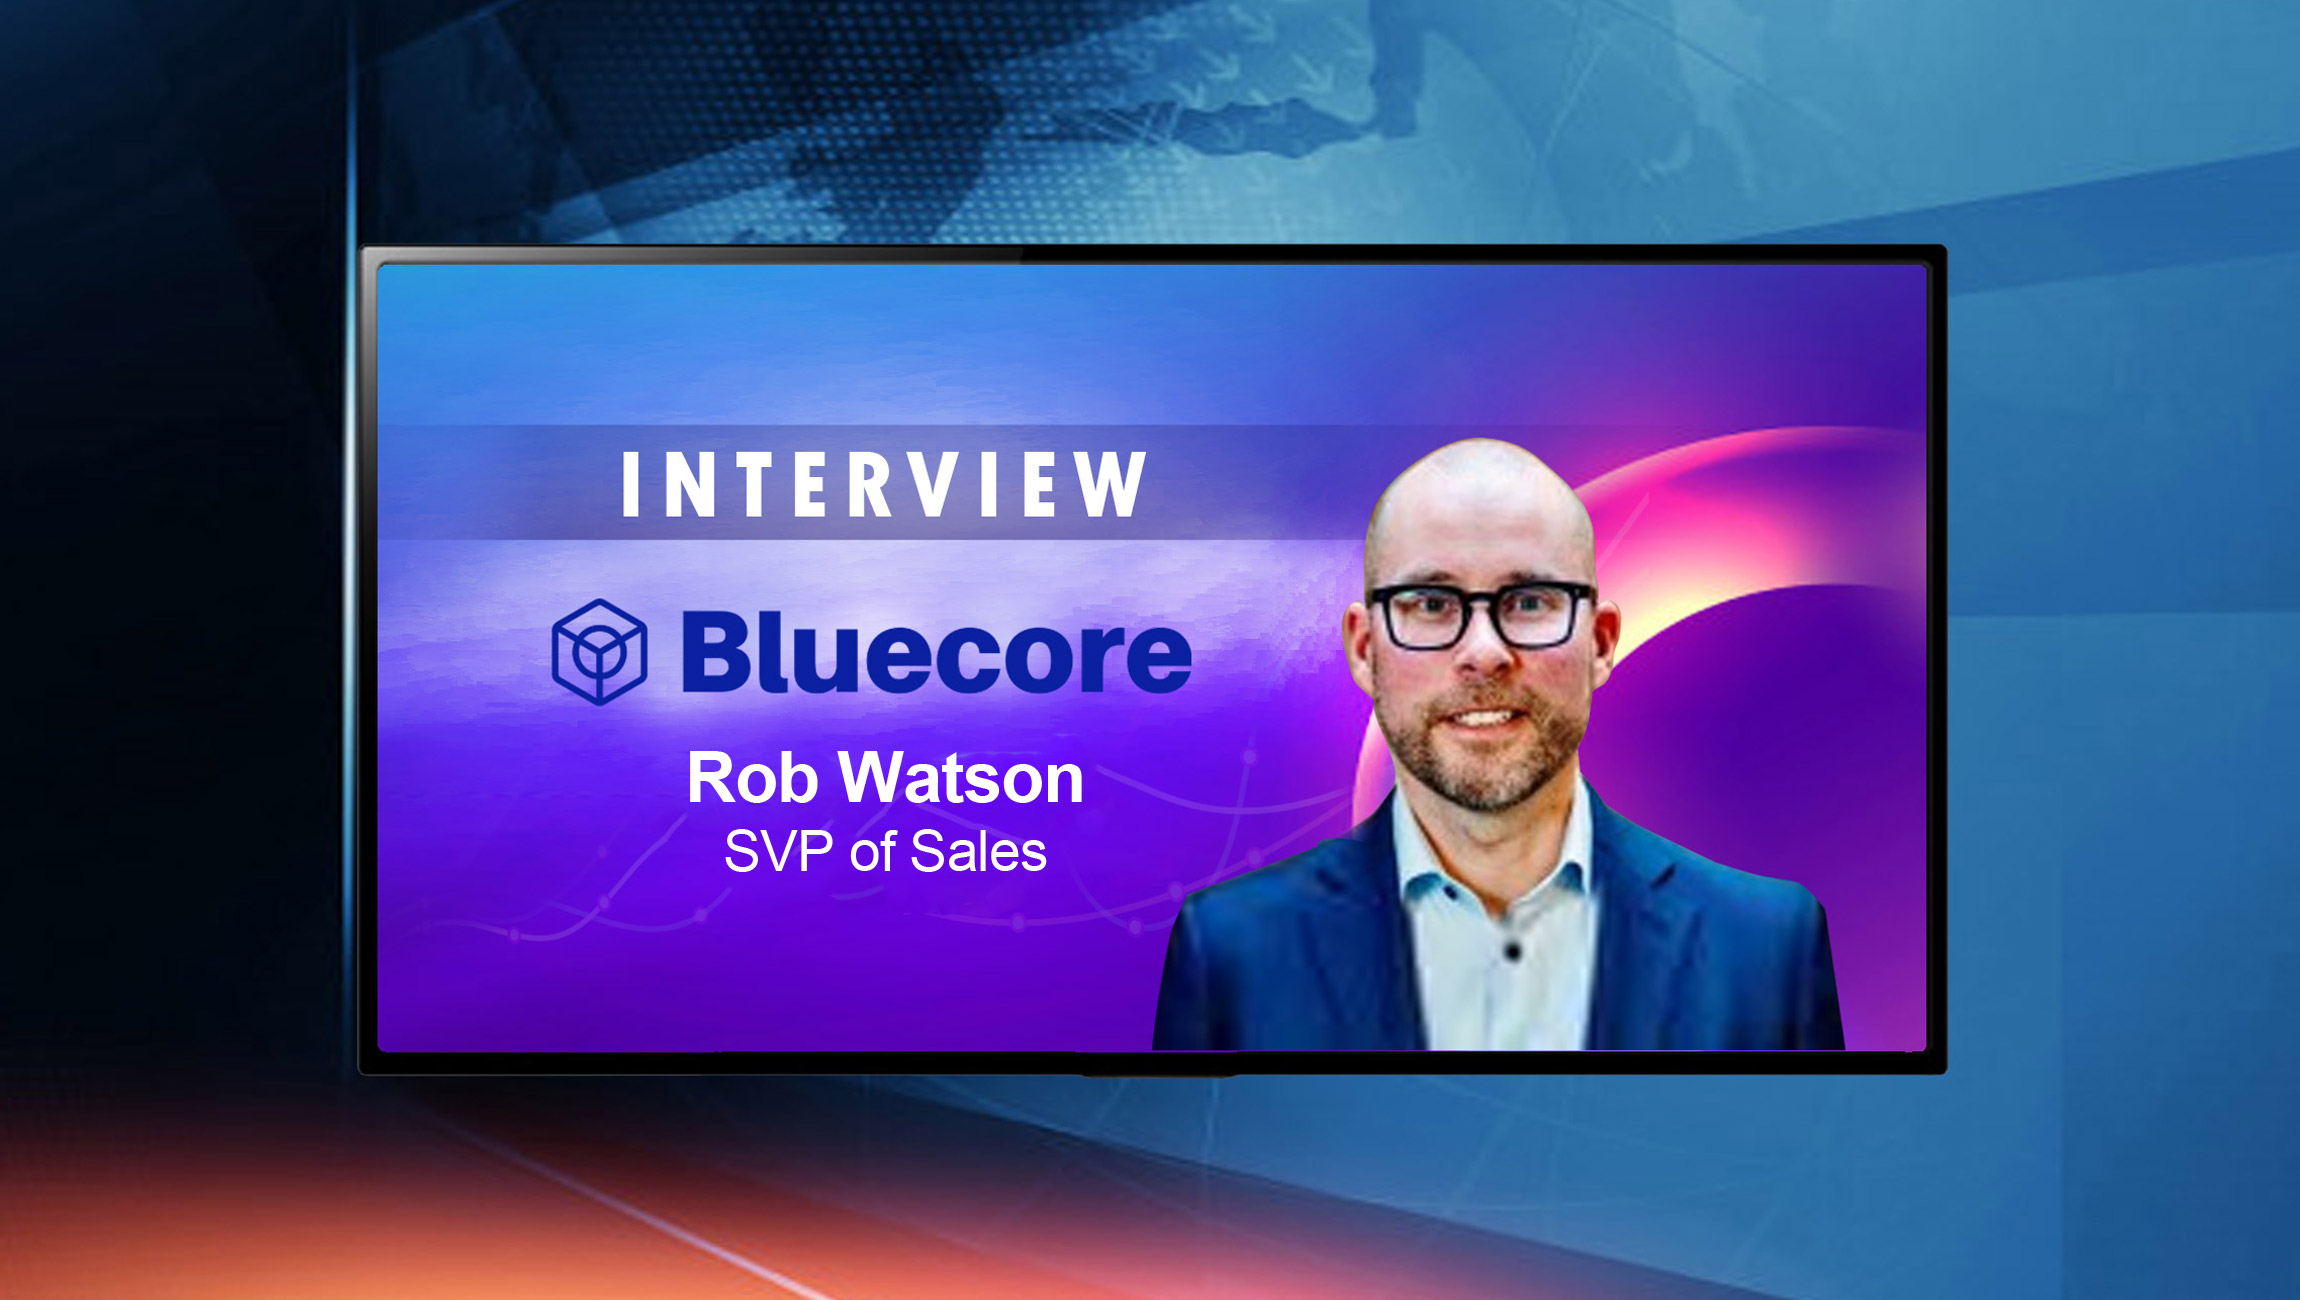 SalesTechStar Interview with Rob Watson, SVP of Sales at Bluecore